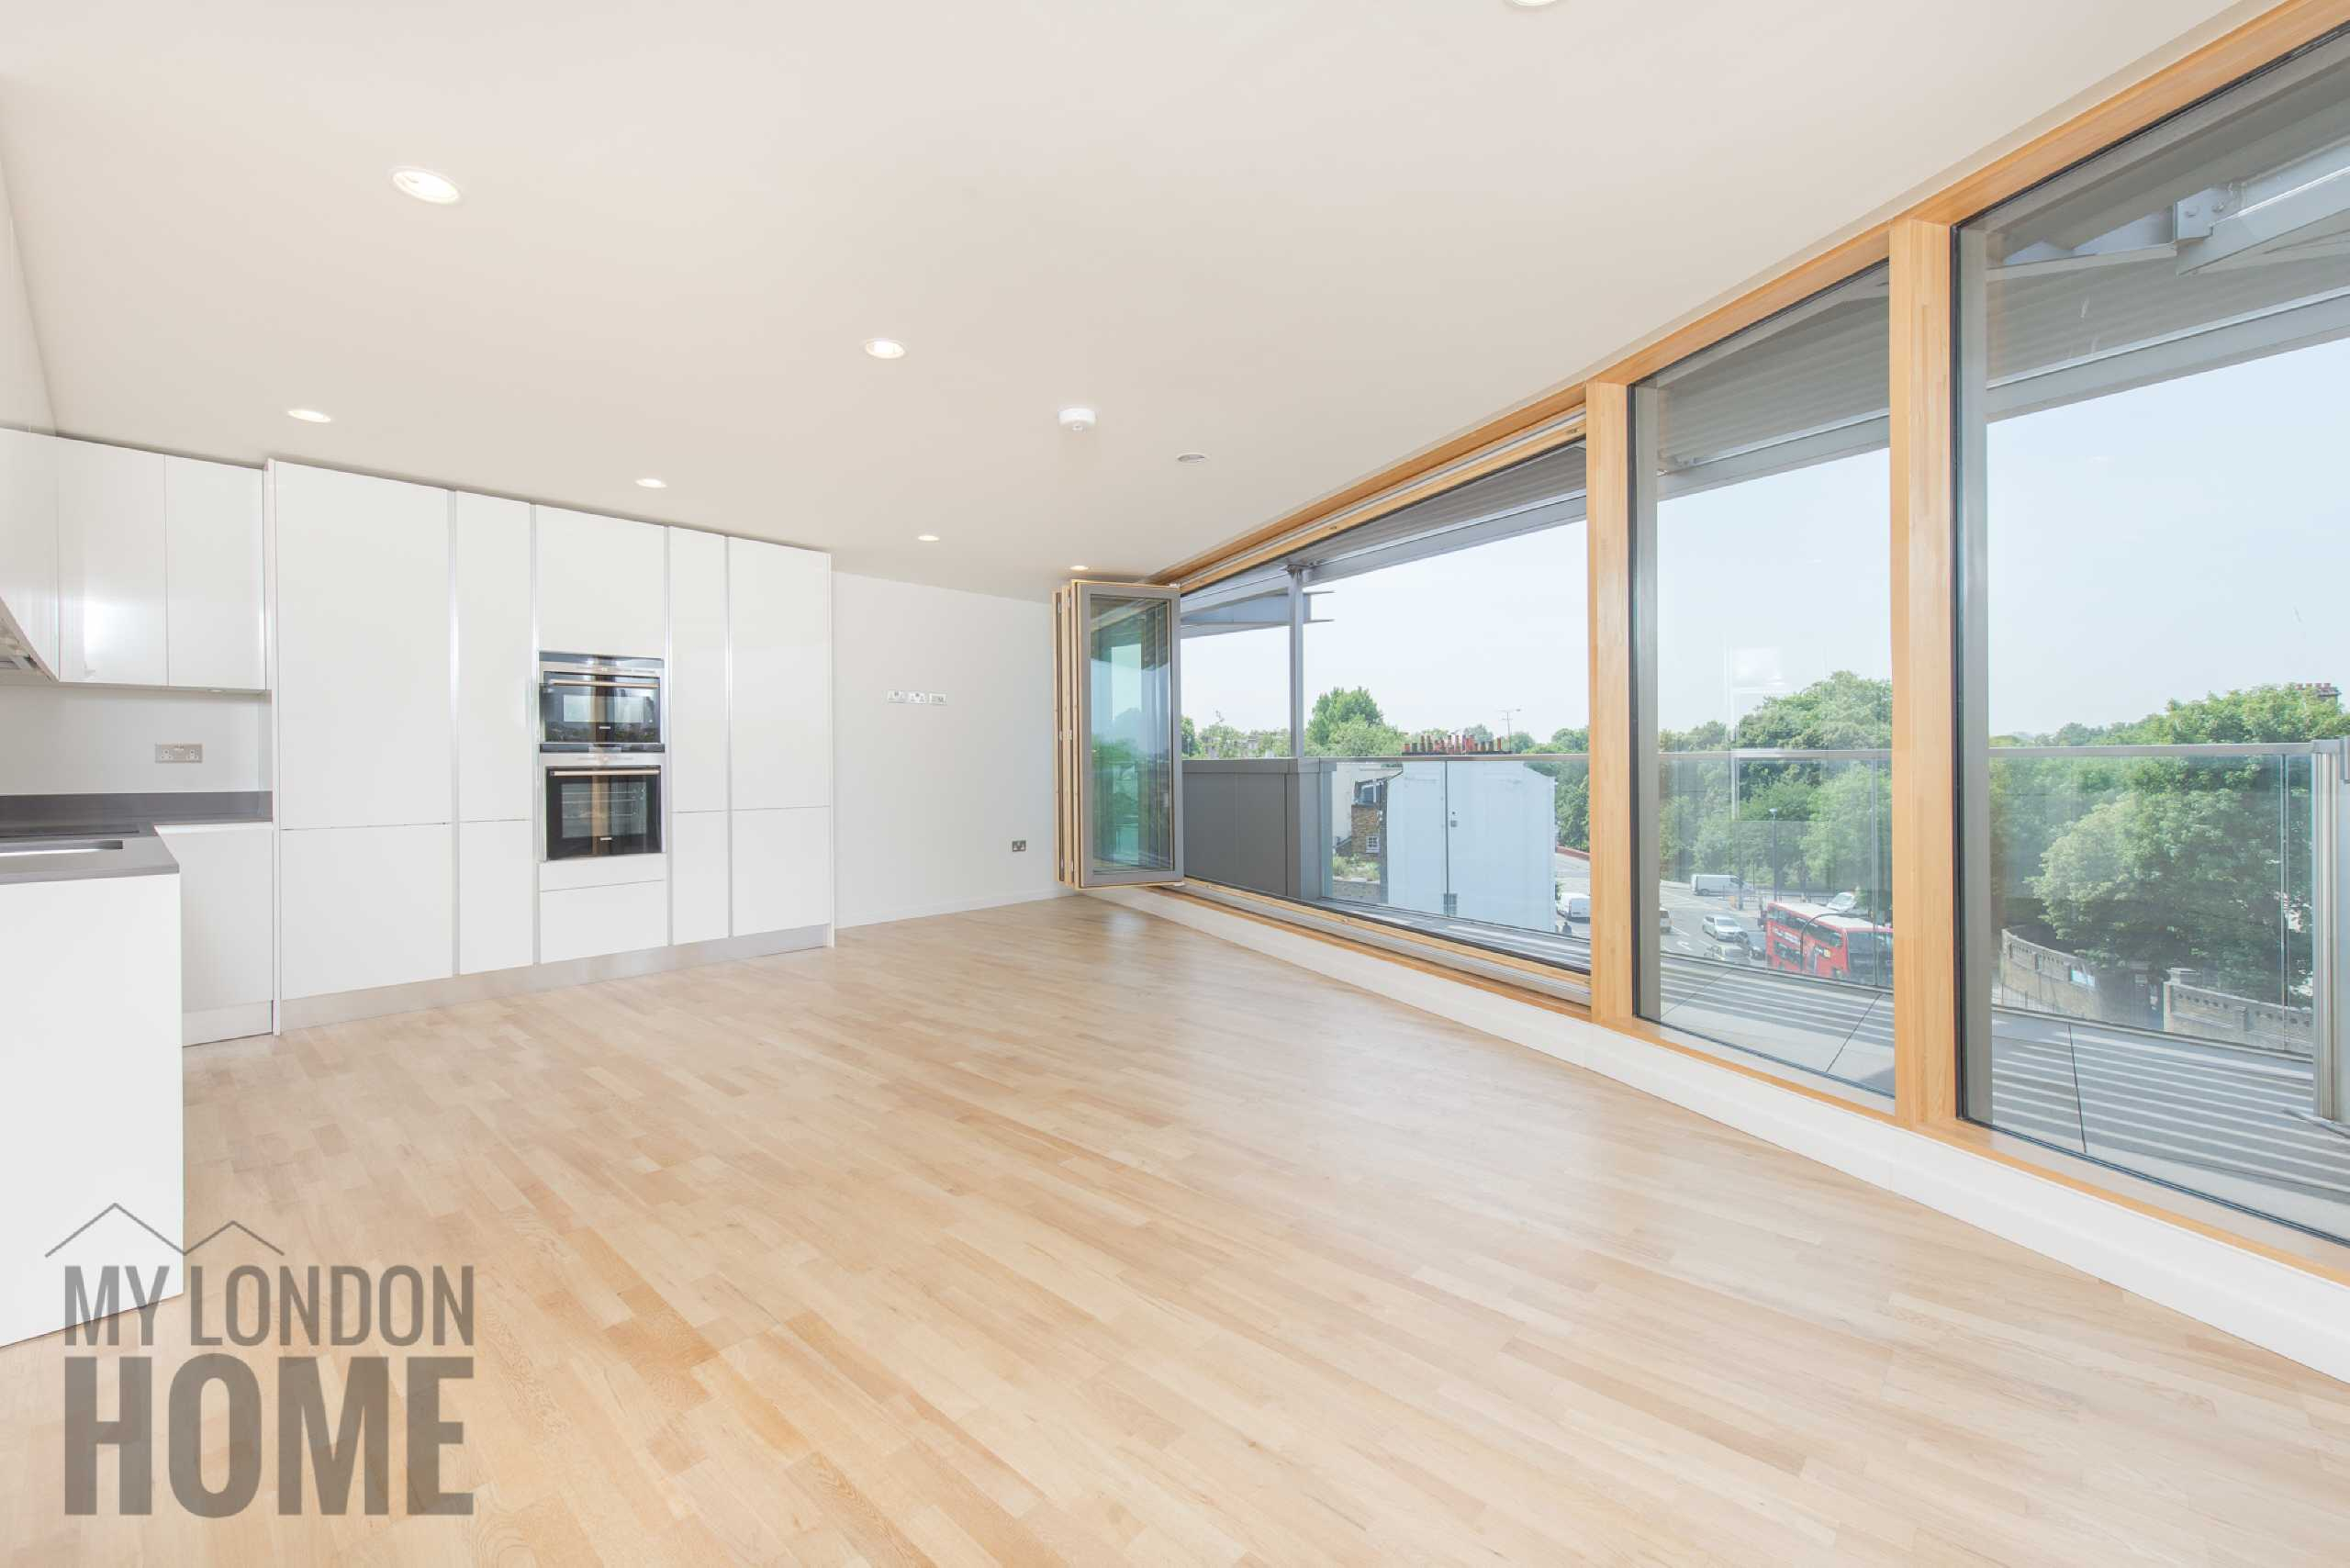 3 Bedrooms Apartment Flat for sale in Solstice Point, Regents Park View, London, NW1